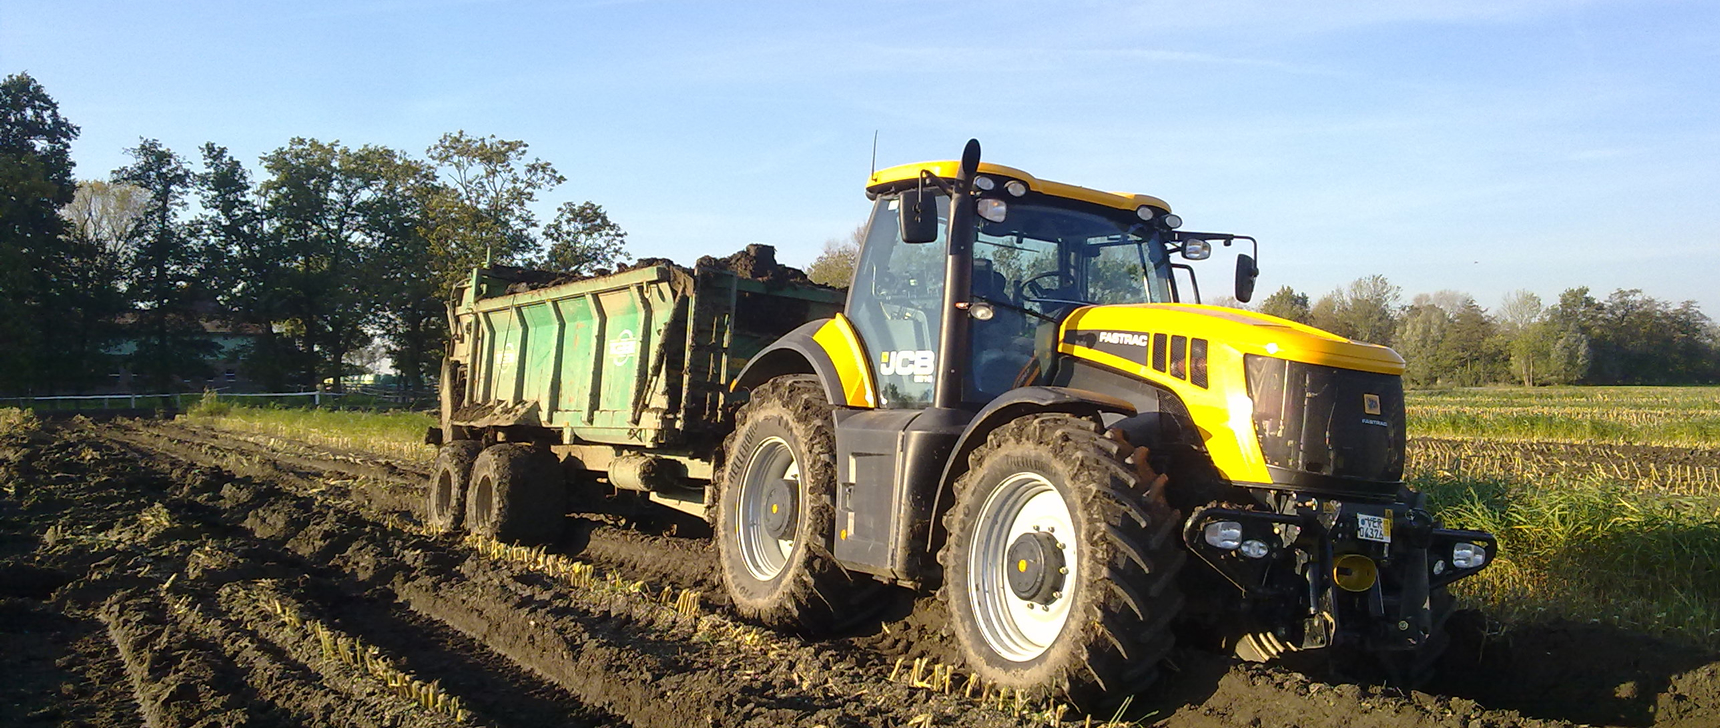 JCB Fastrac with LITE-wire LED lighting